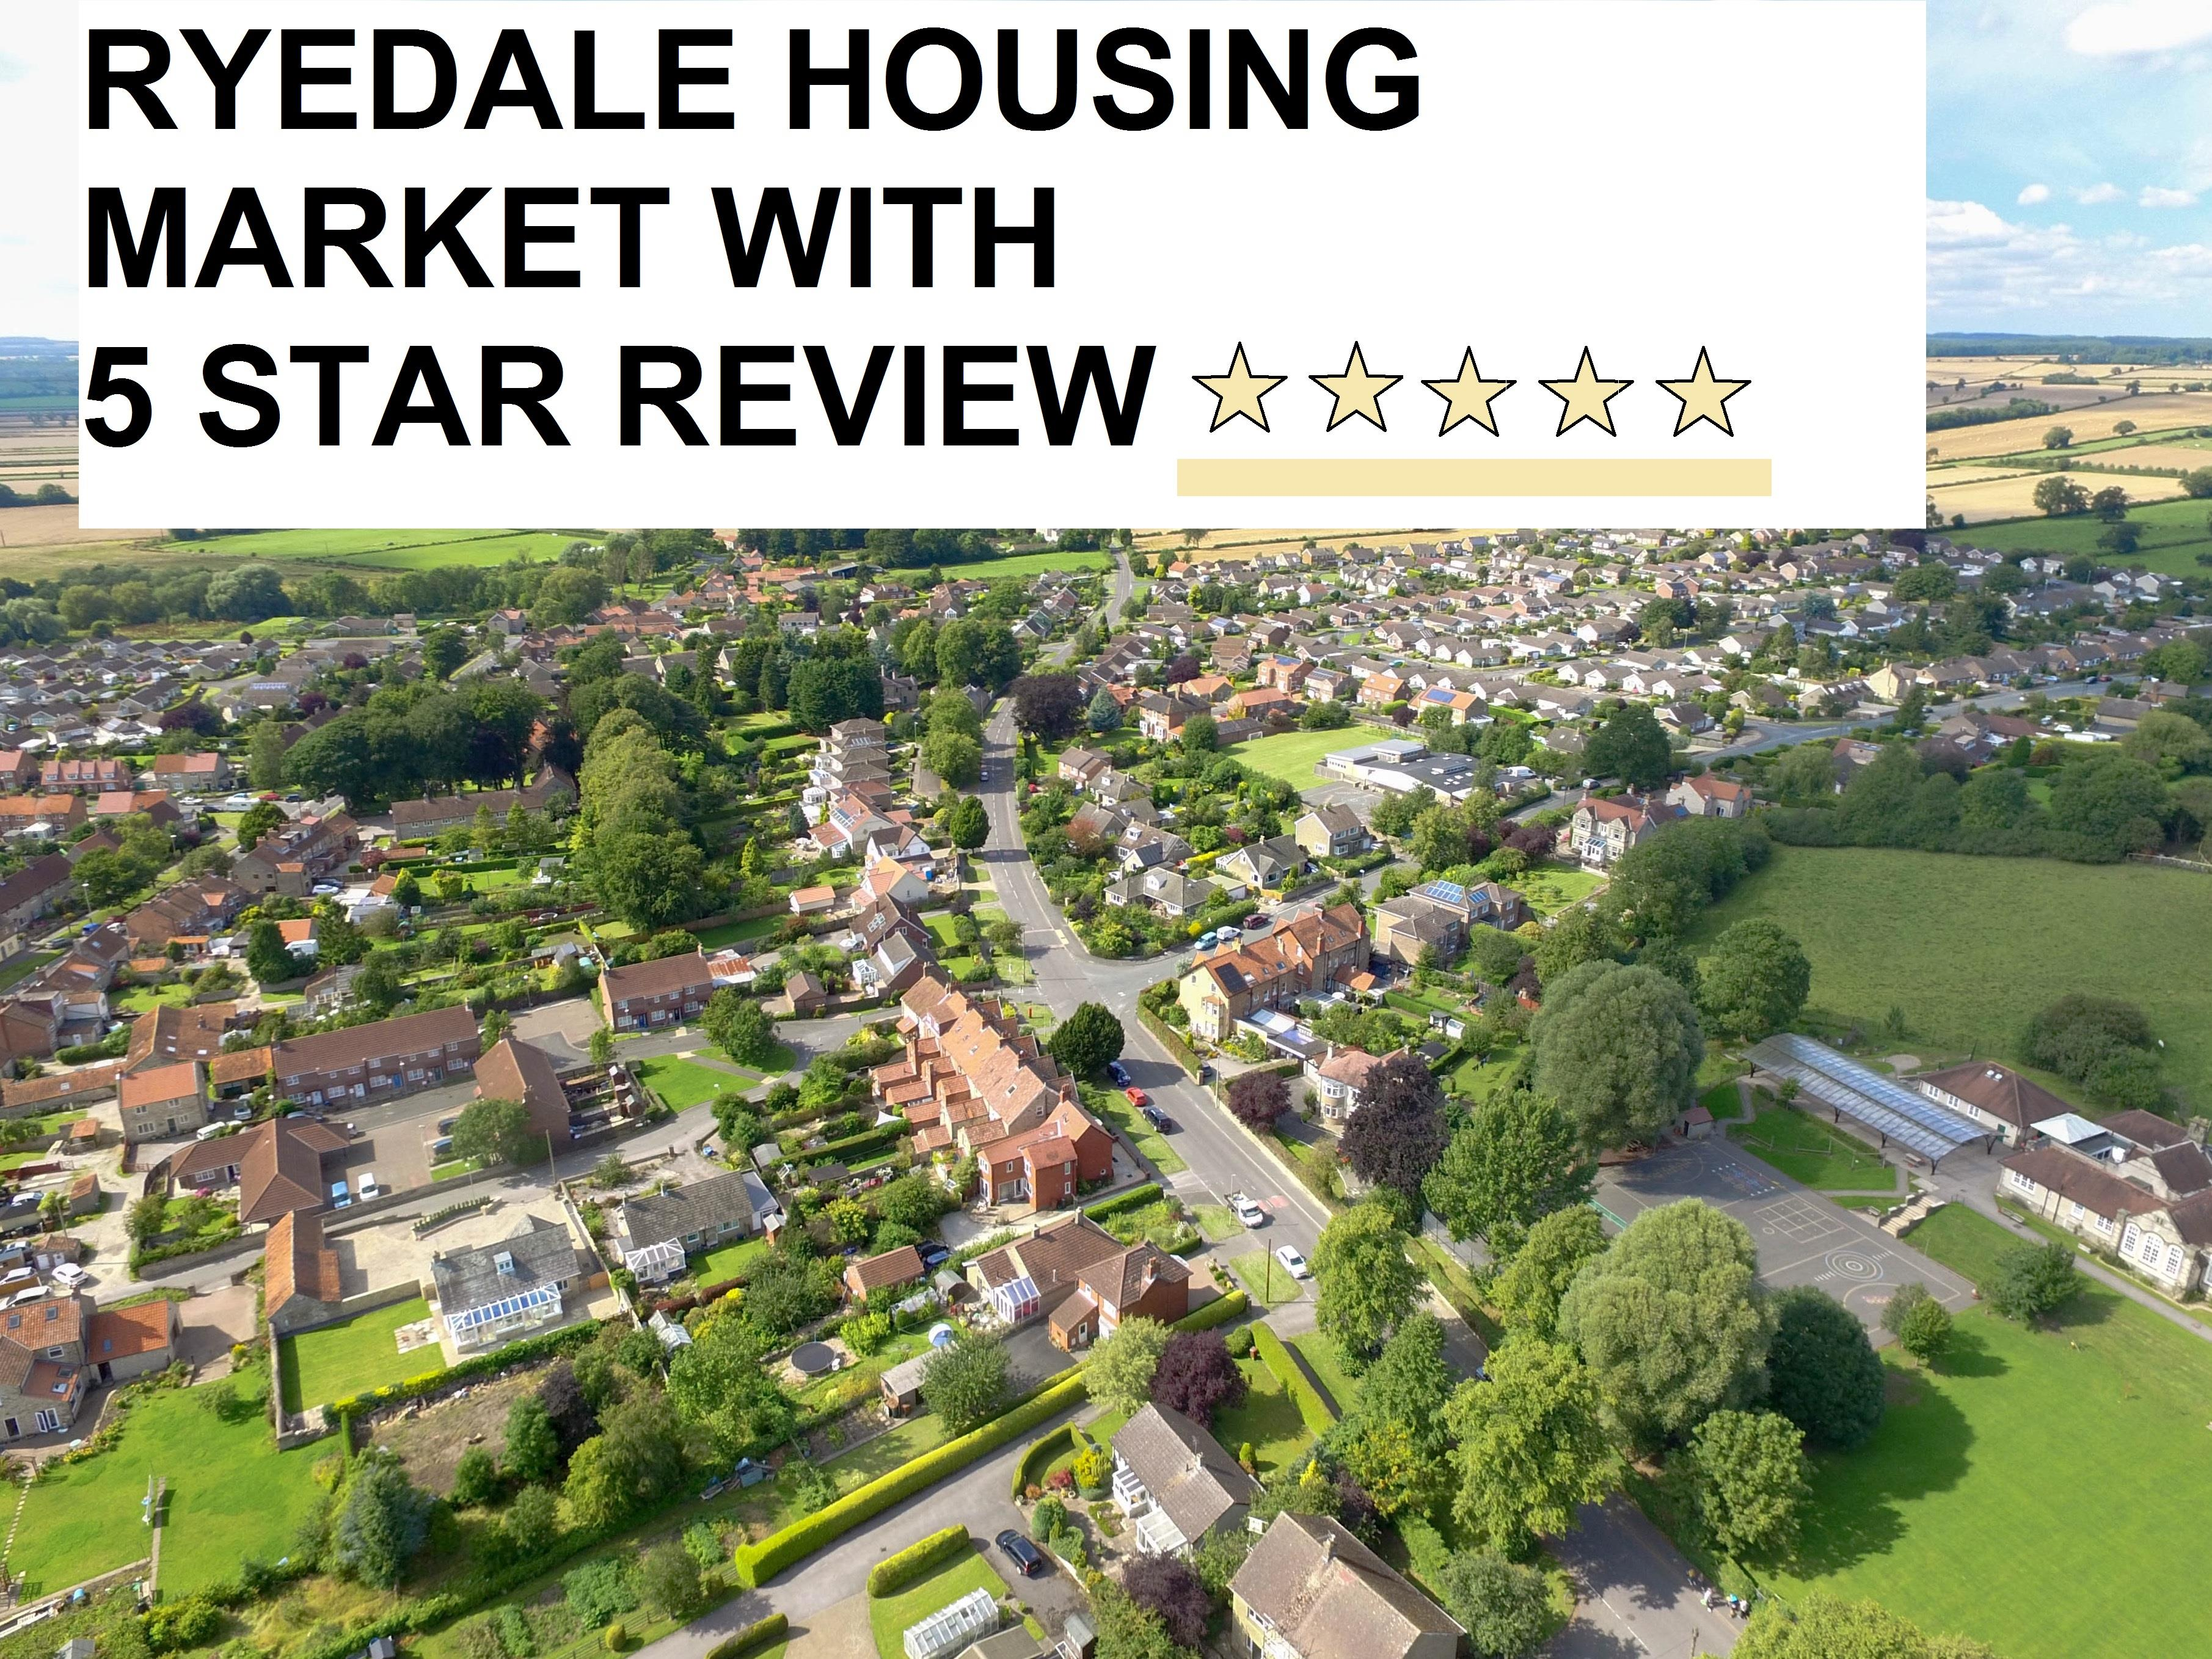 Ryedale housing market with 5 star performance and review – by Peter Illingworth Property Agent